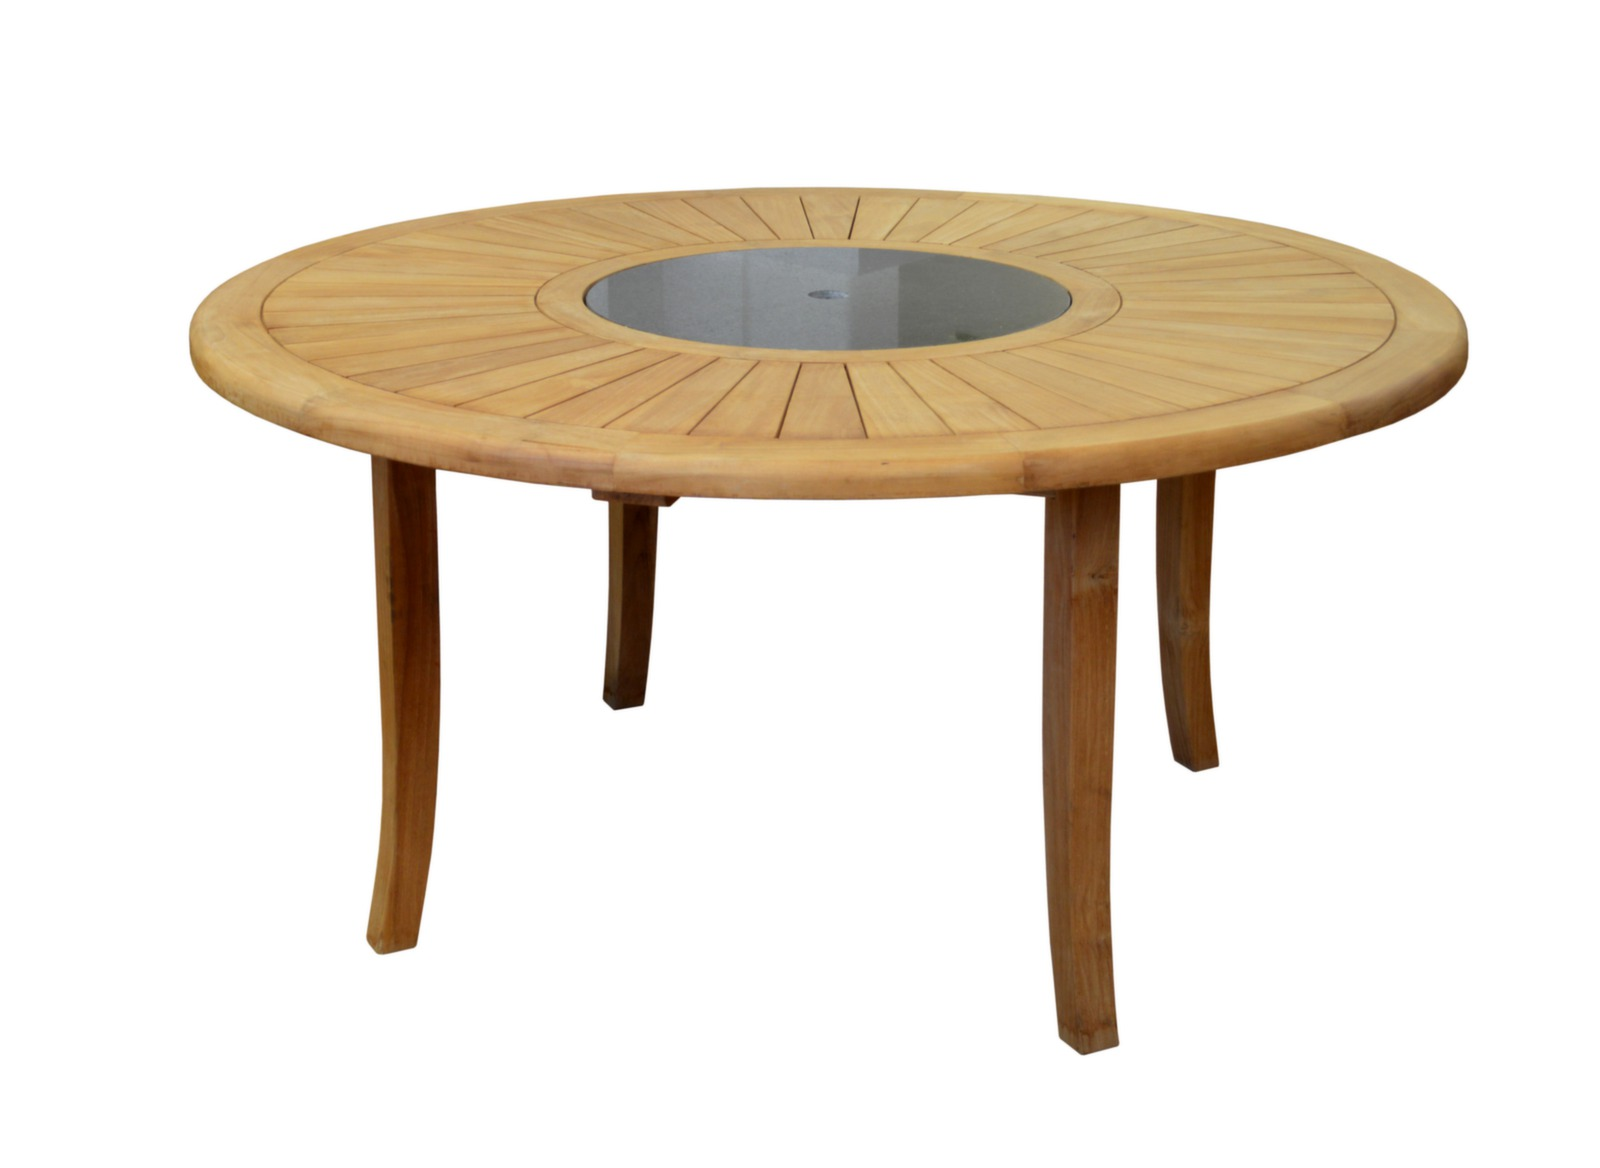 beautiful table de jardin ronde en bois avec plateau. Black Bedroom Furniture Sets. Home Design Ideas